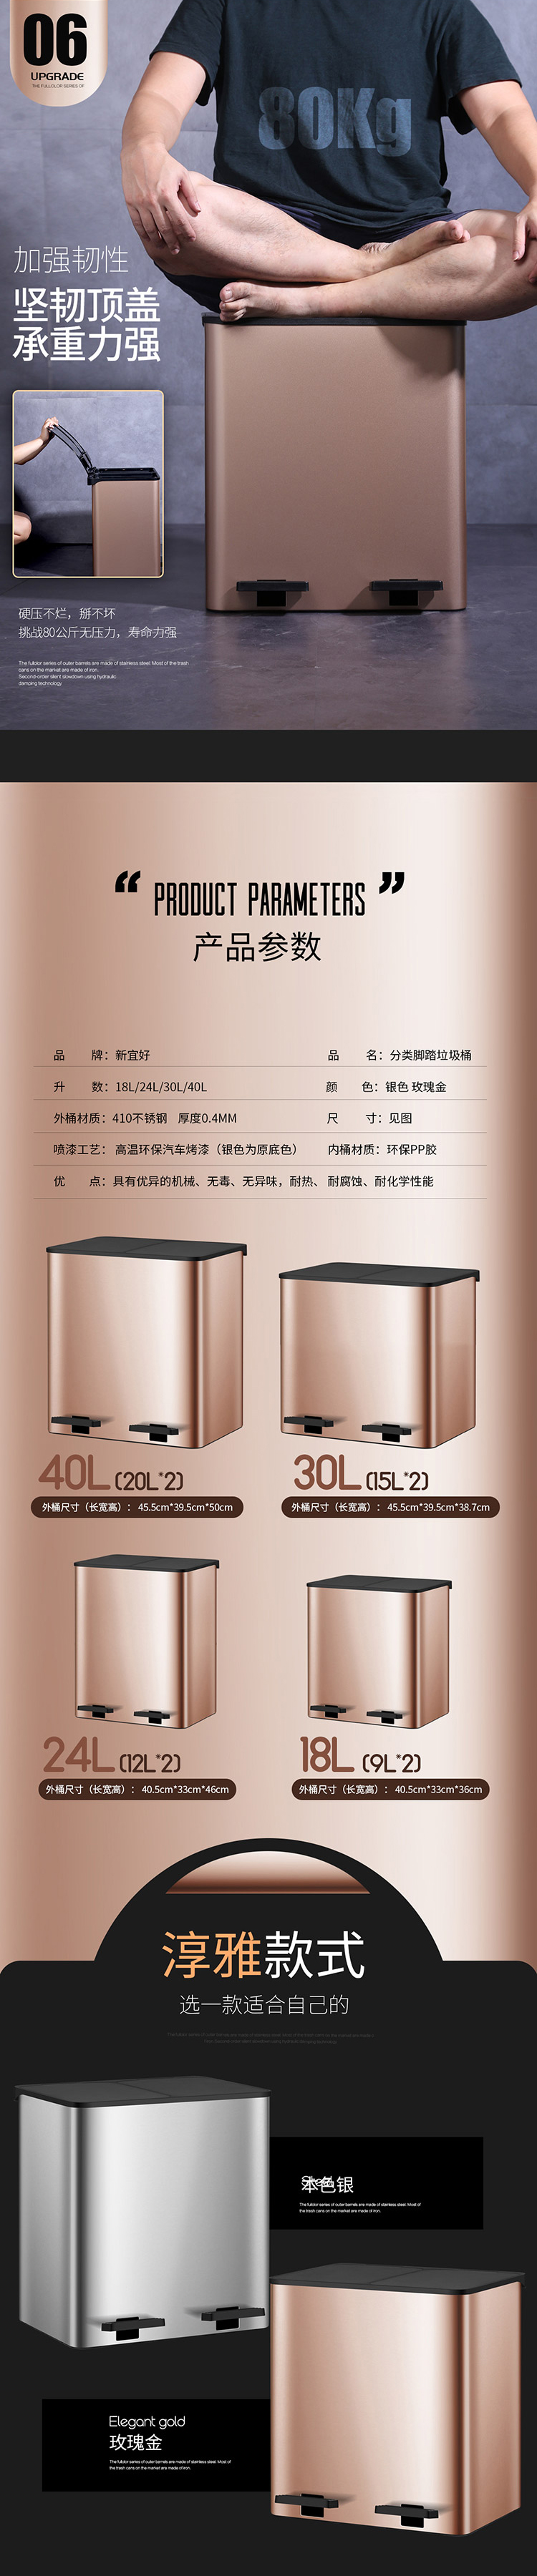 Classified Trash Can Wastebasket,Garbage Container Bin for Bathrooms, Powder Rooms, Kitchens, Home Offices